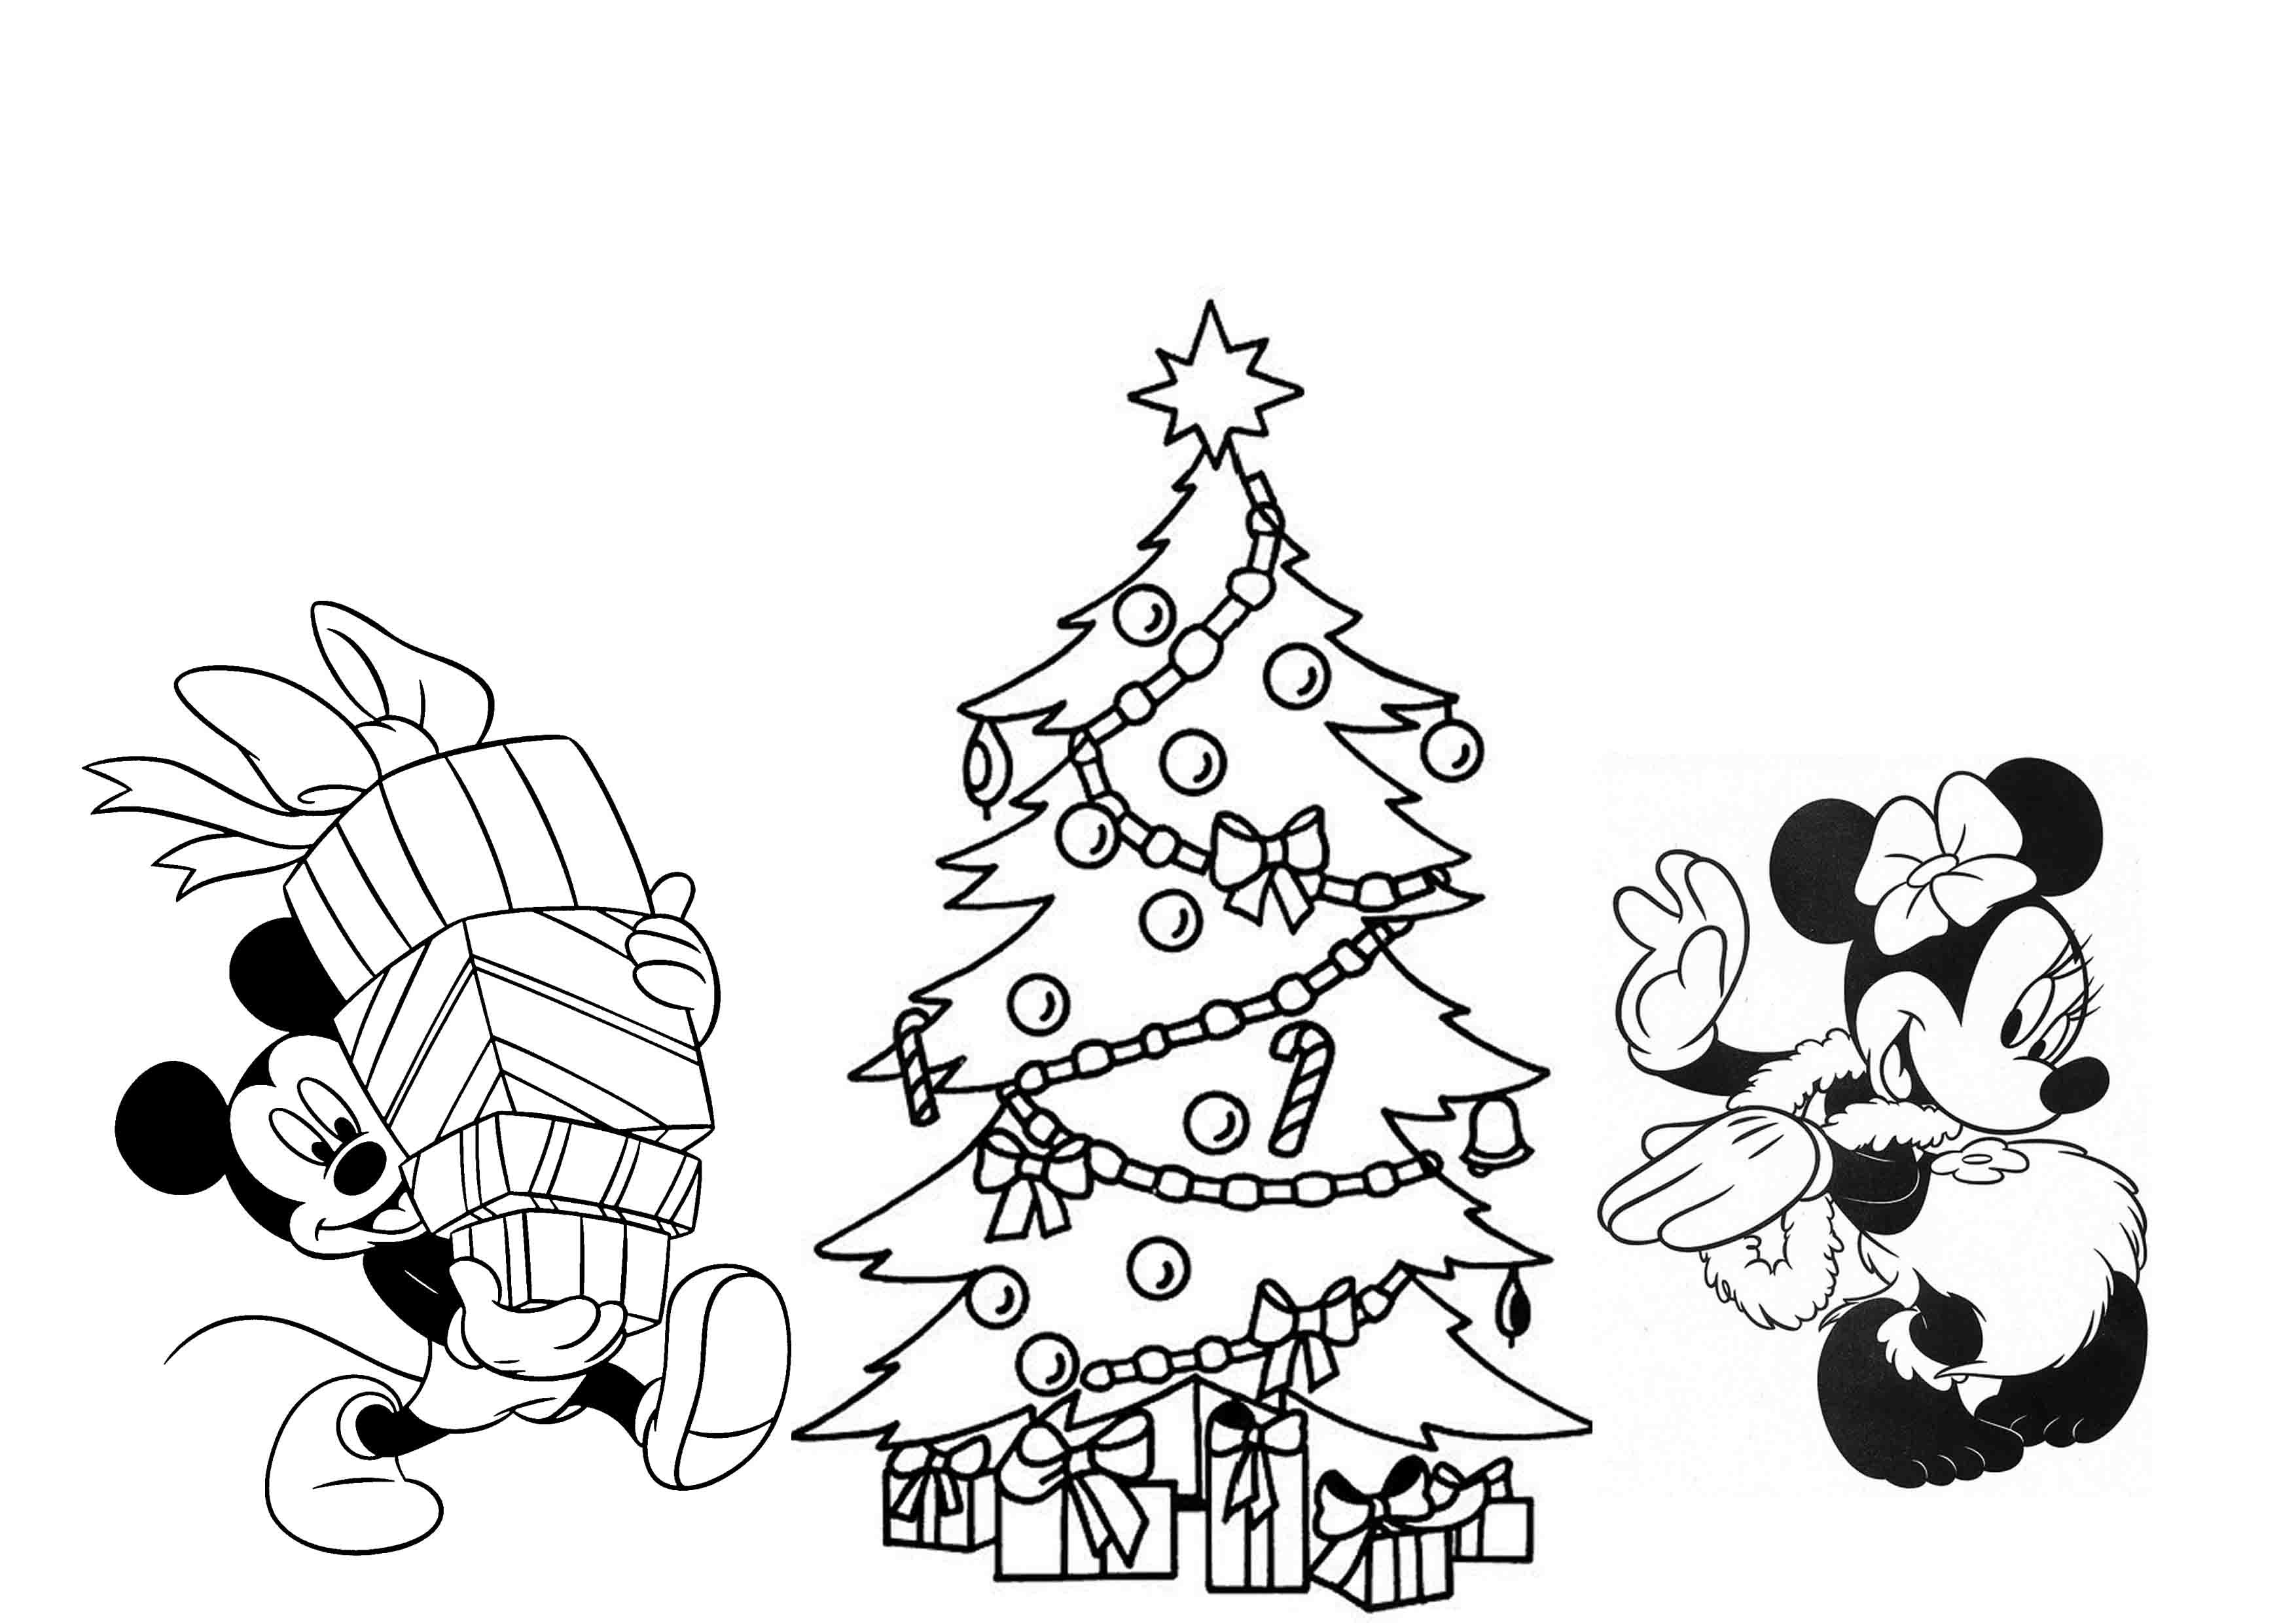 Best ideas about Free Christmas Printable Coloring Sheets For Kids . Save or Pin Print & Download Printable Christmas Coloring Pages for Kids Now.